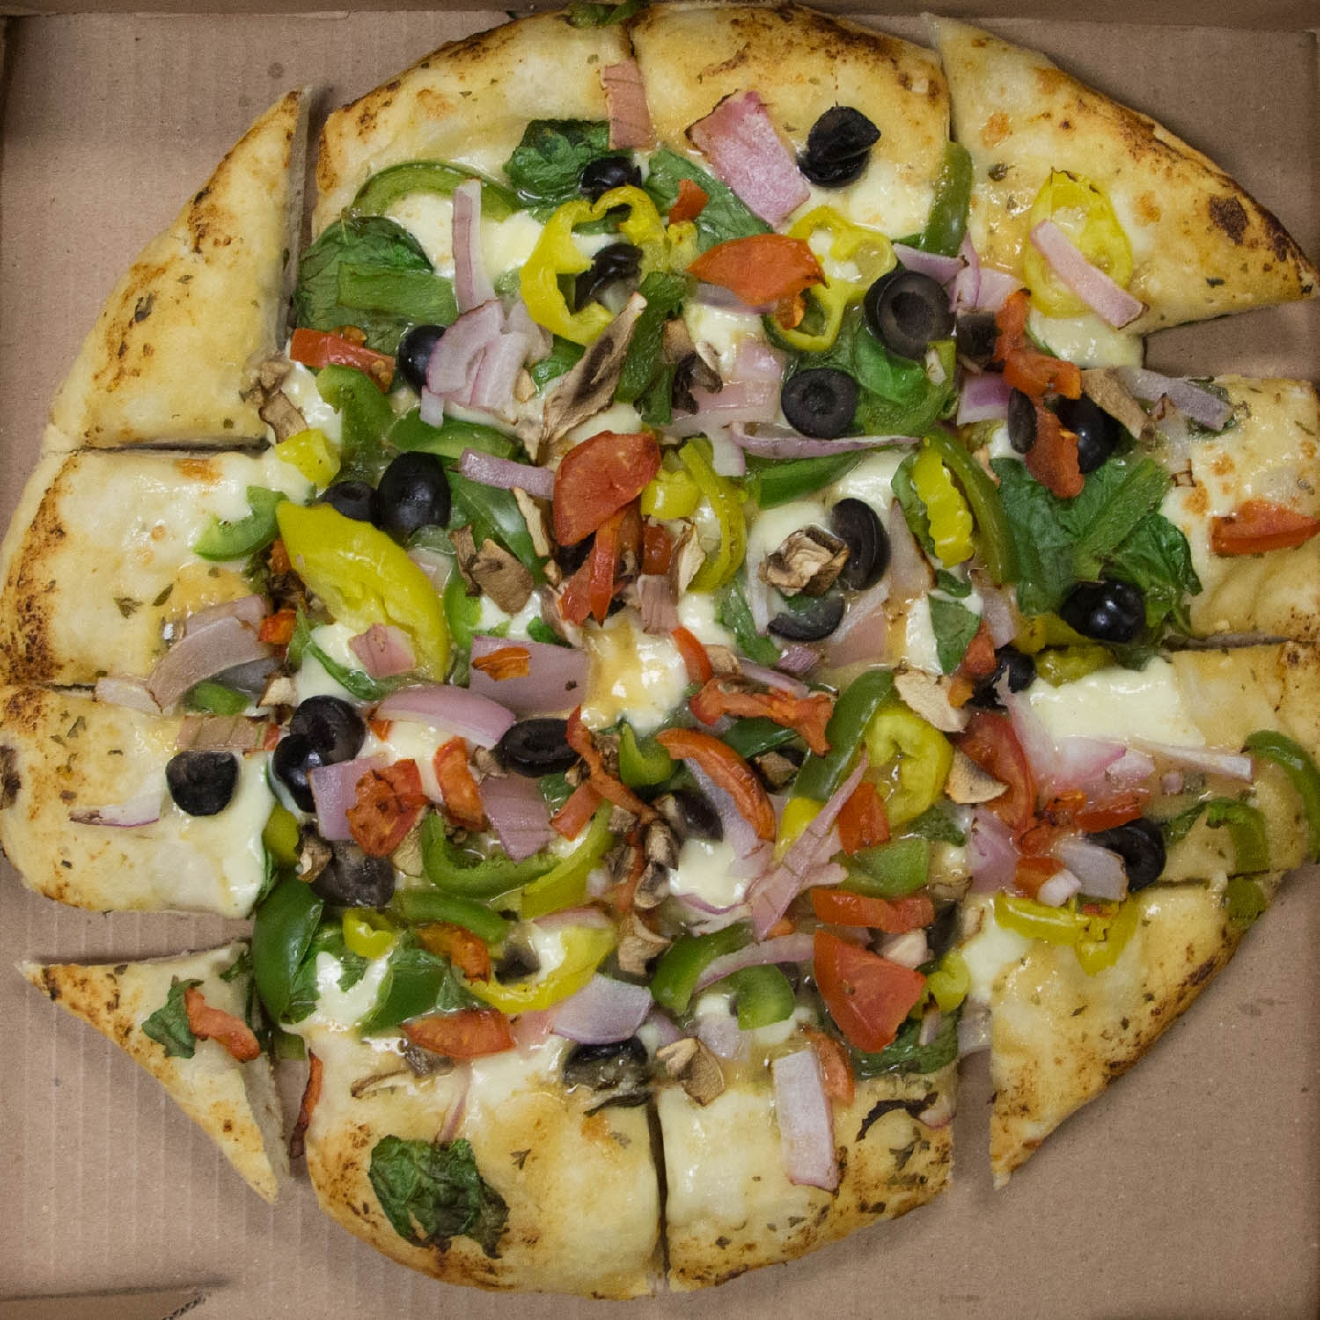 Veggie Pizza / Image: Catherine Viox // Published: 11.16.16